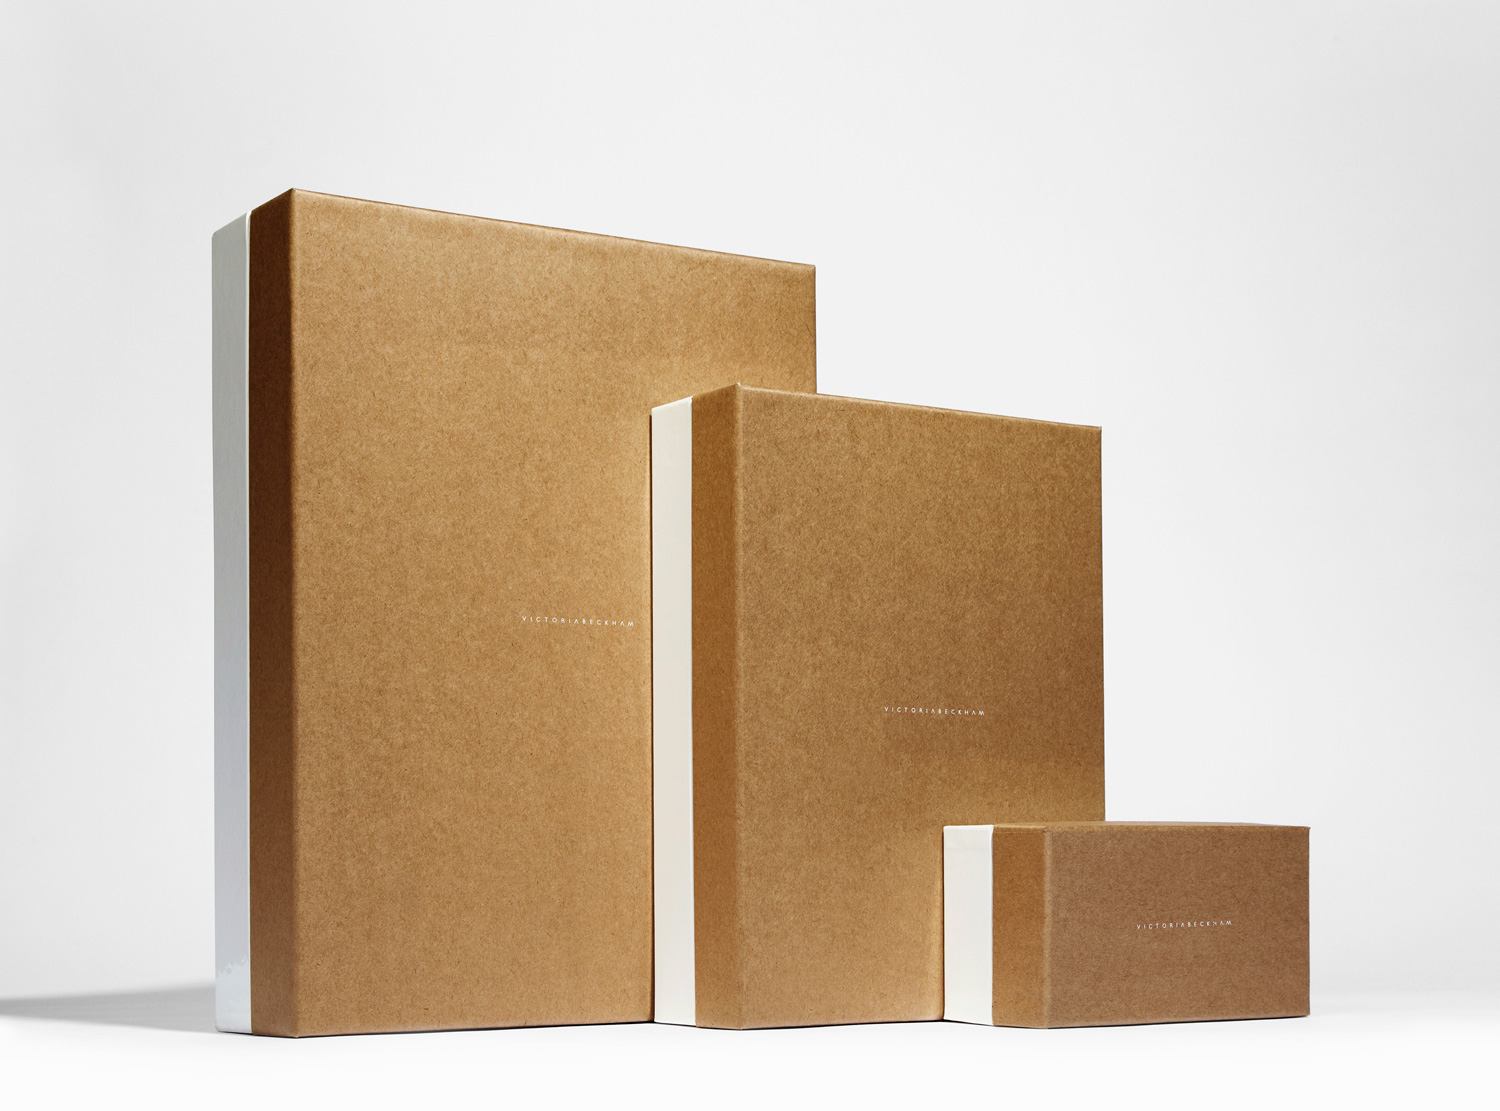 Progress Packaging Victoria Beckham Luxury Fashion Ecommerce Boxes Range Kraft Paper Contrast